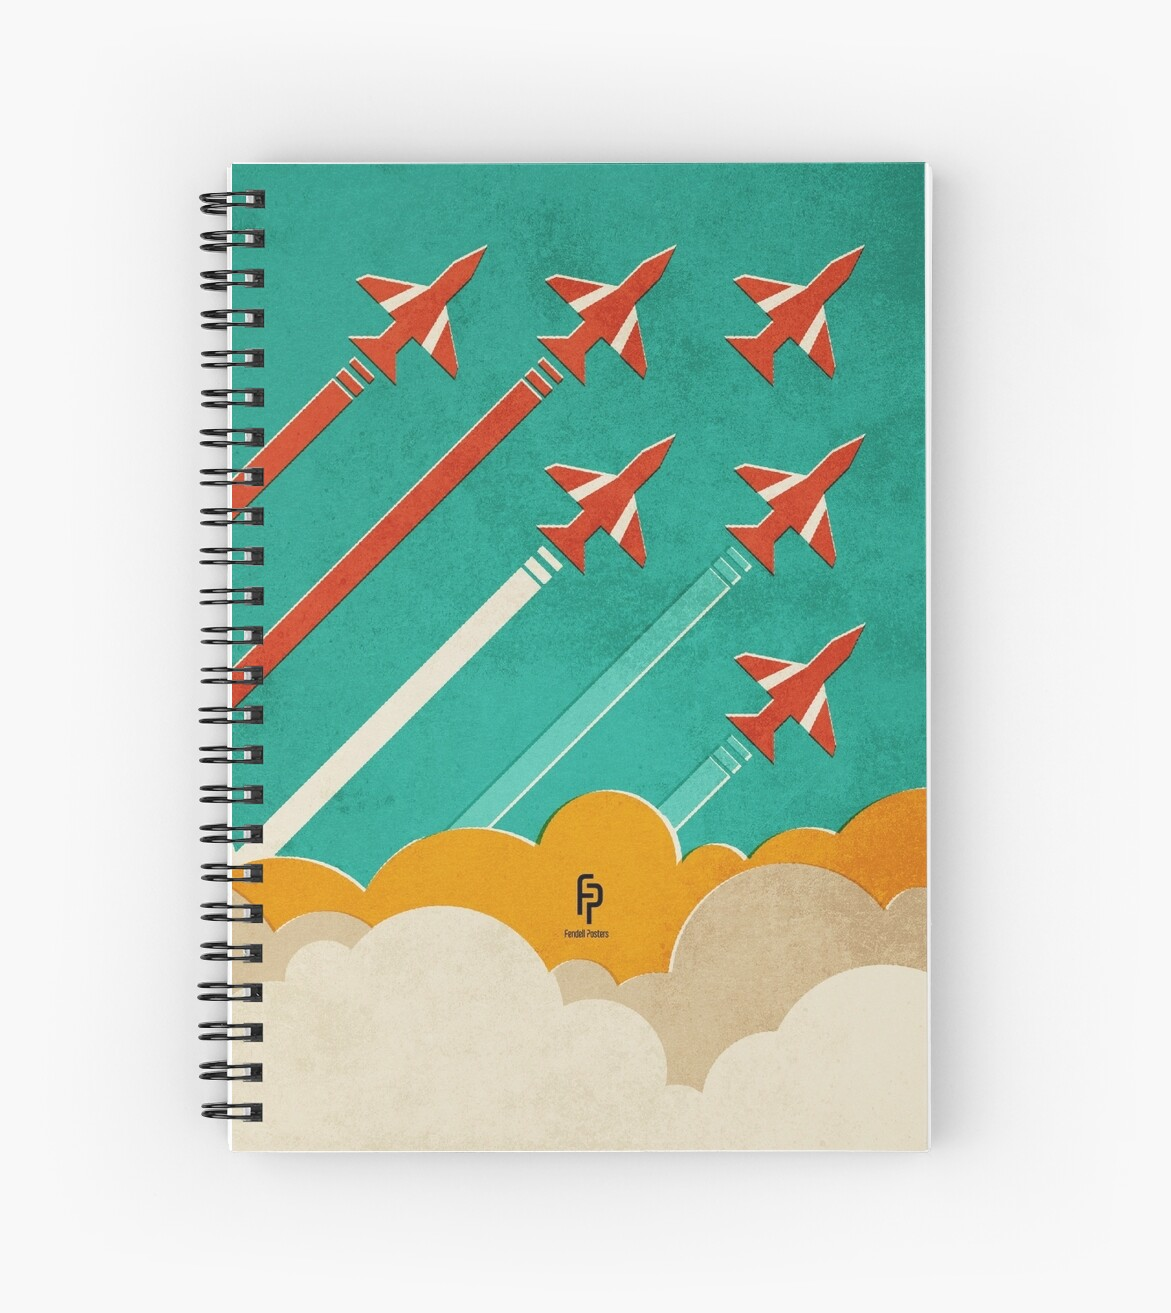 The Red Arrows over the Thames Estuary by FendellPosters